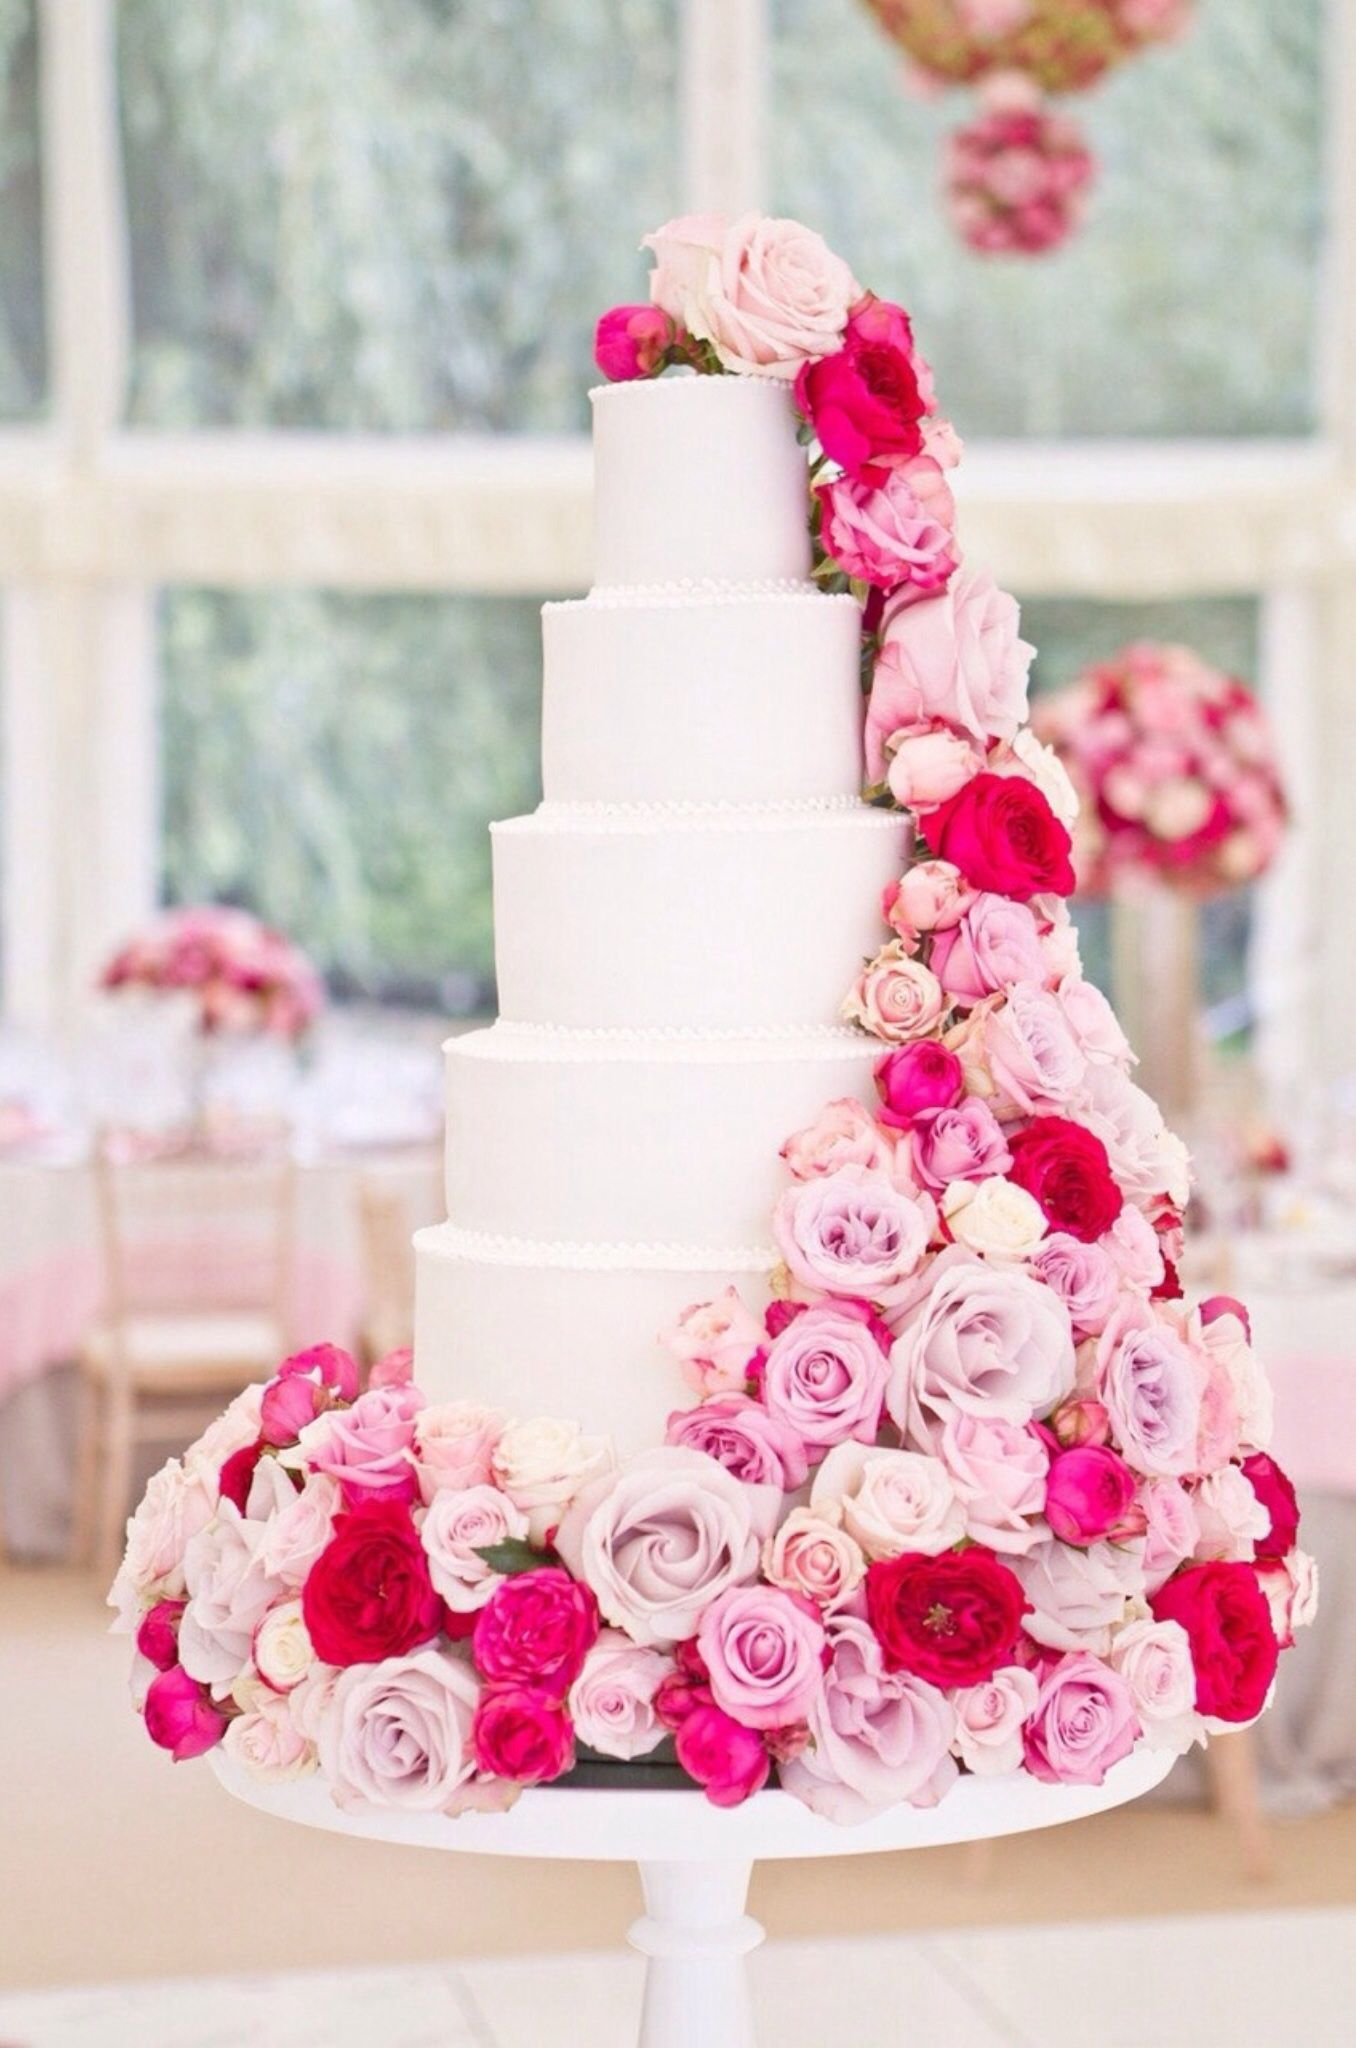 Love how the flowers are placed | WEDDING CAKES | Pinterest ...